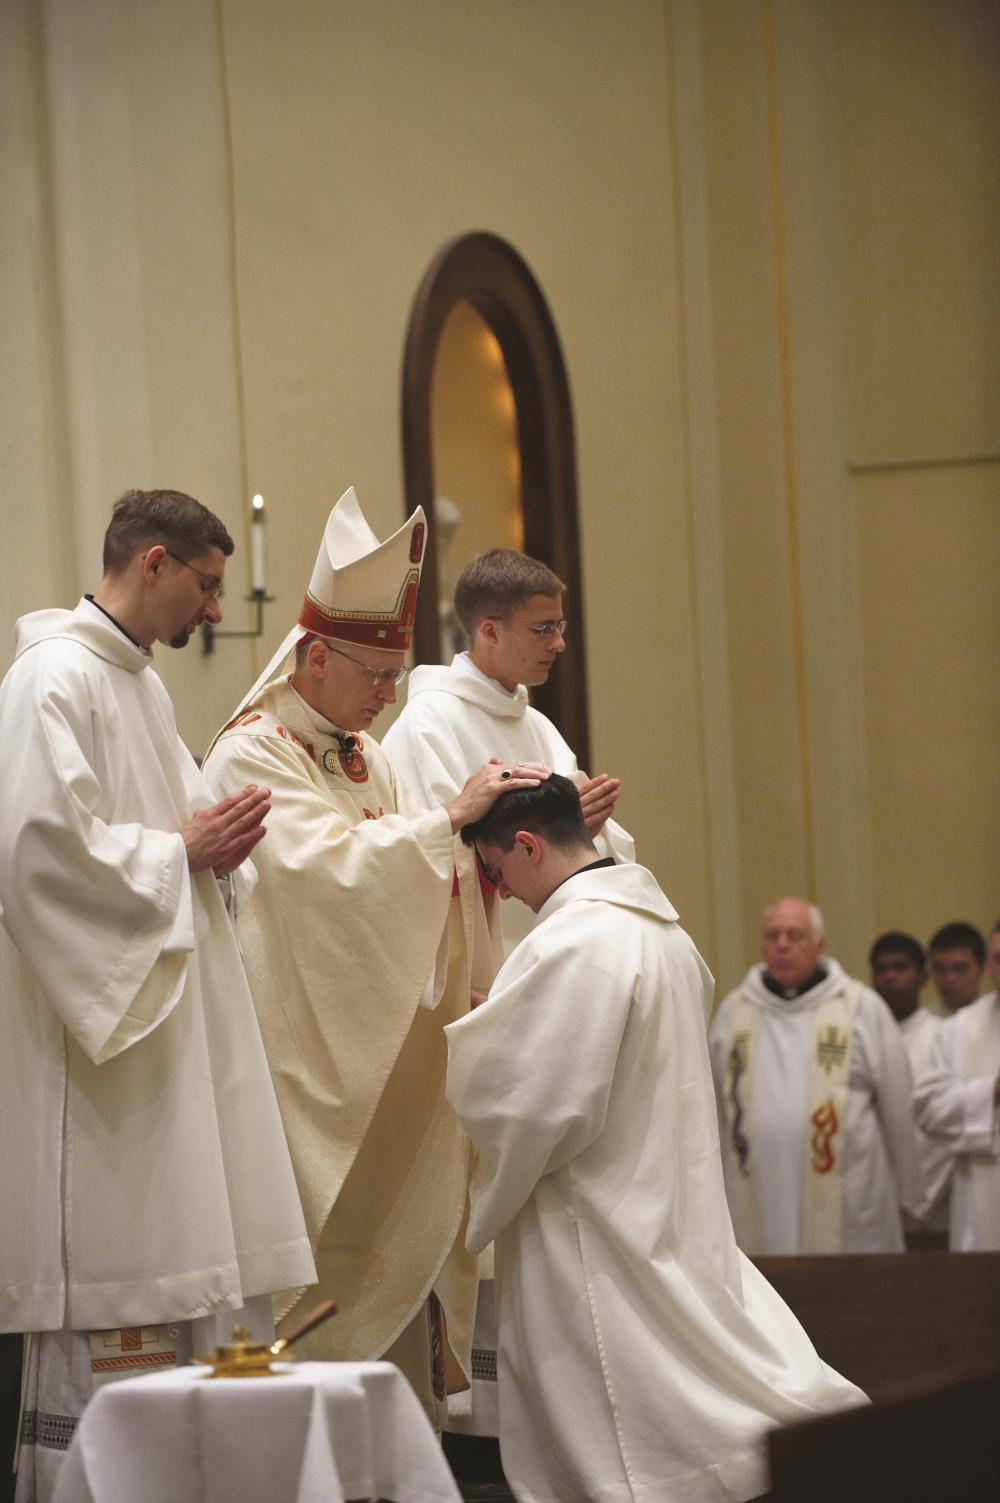 A new translation of the Mass – a call a renewed commitment to worship